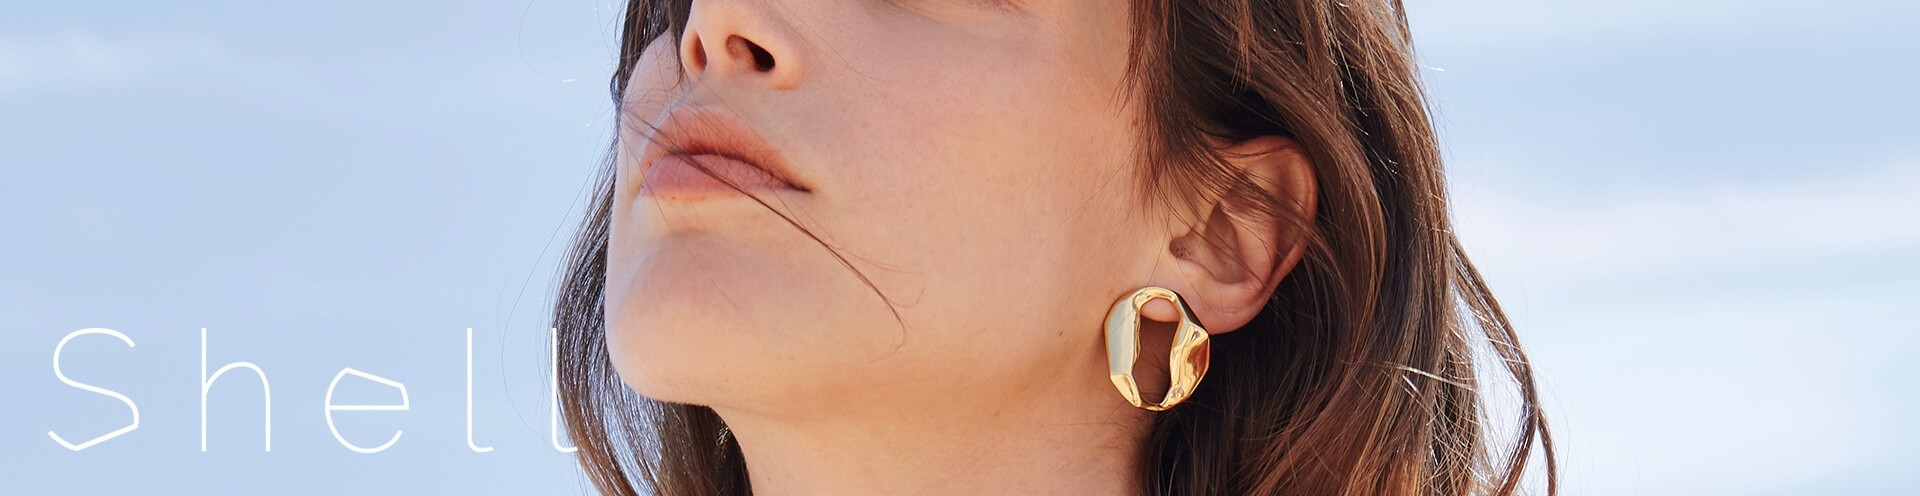 Shell | Trendy jewels with shells | MURONA